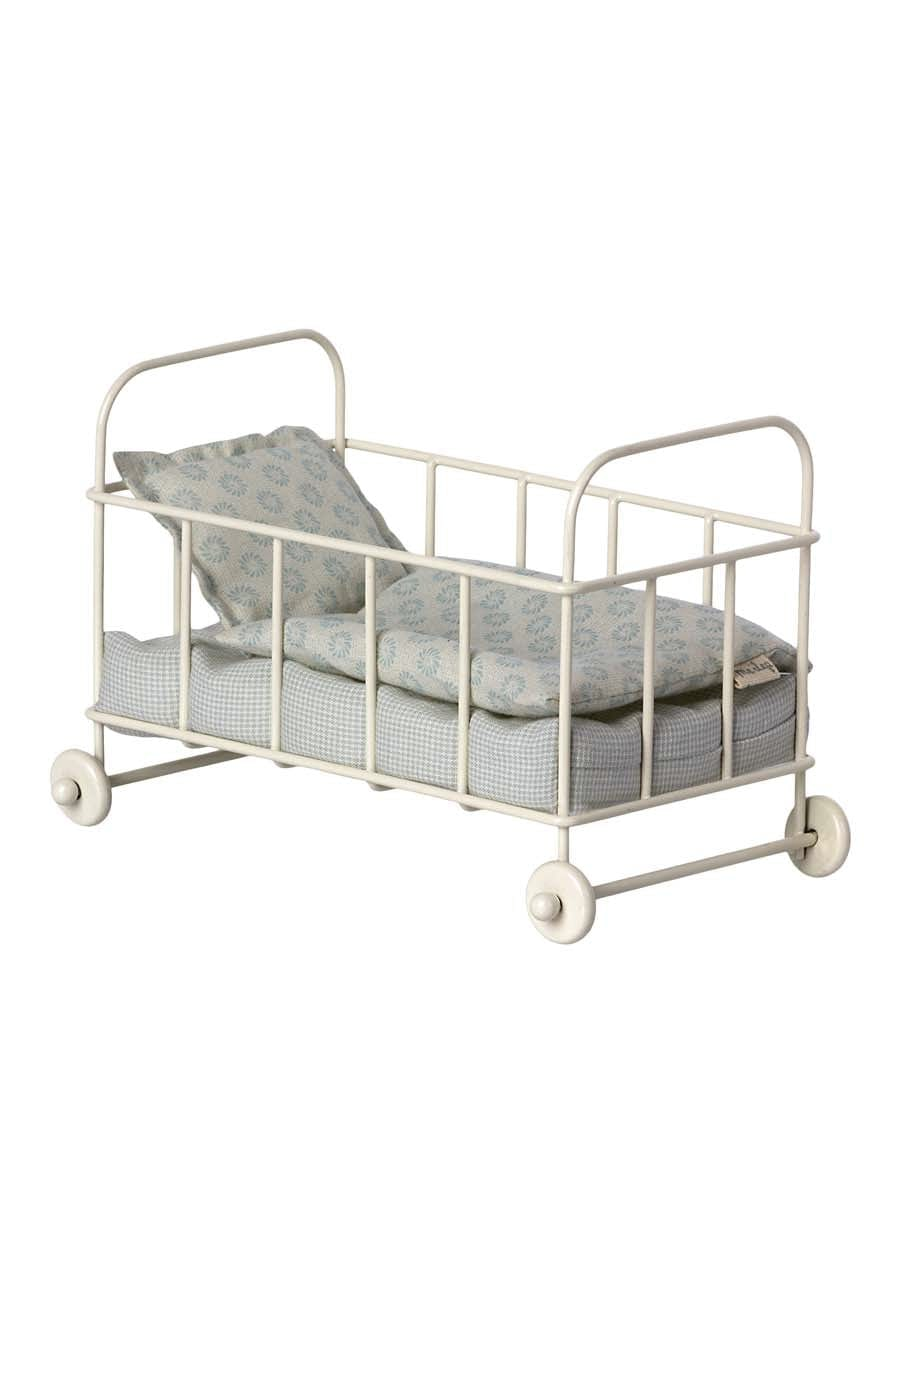 Maileg Furniture - Metal Baby Cot